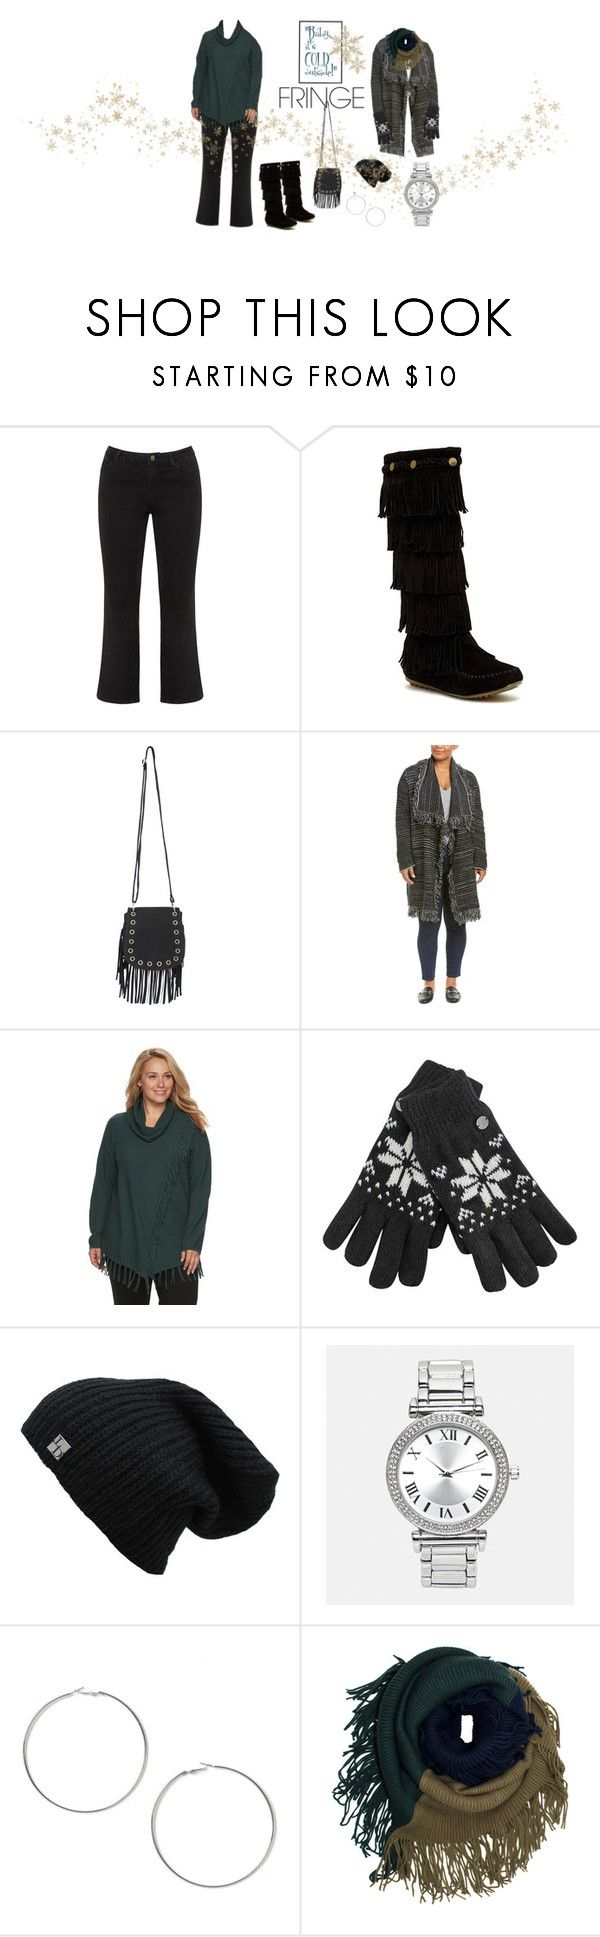 """""""Shimmy! Shimmy! Fringe..."""" by lynnieluwho ❤ liked on Polyvore featuring JunaRose, Shoes of Soul S.O.S., Pilot, NYDJ, Croft & Barrow, Avenue, Miss Selfridge and plus size clothing"""